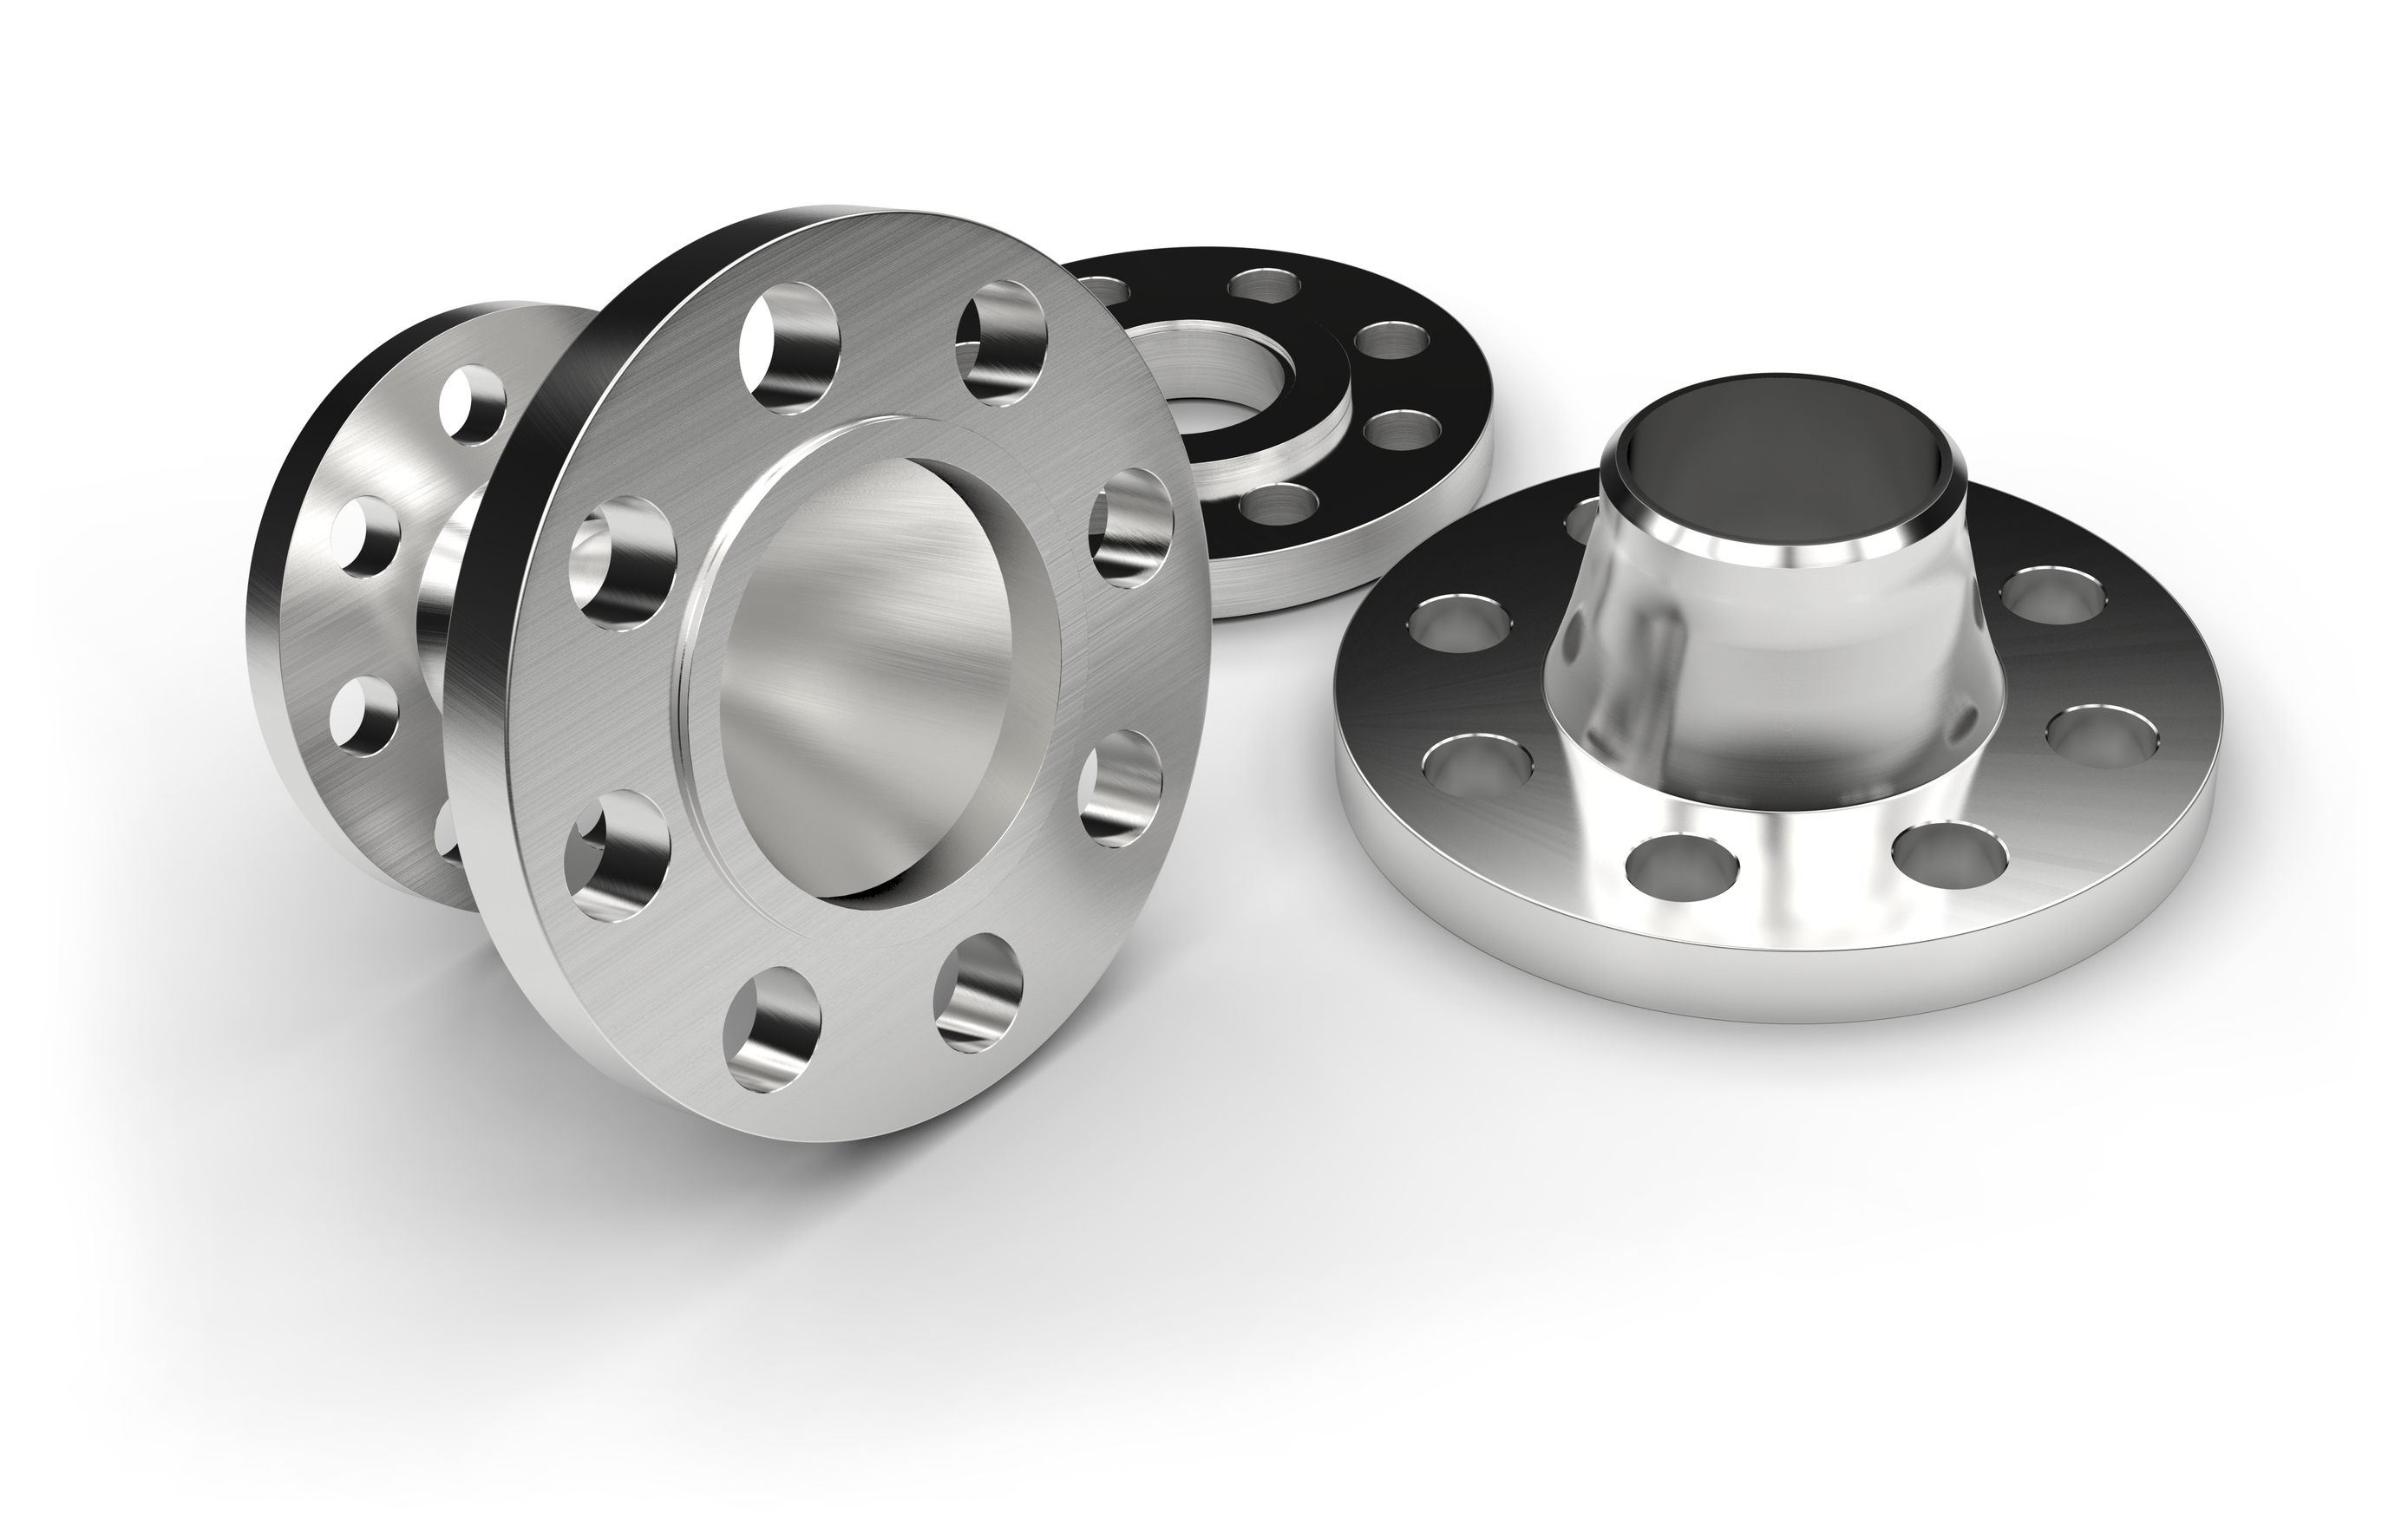 Newman Flange Amp Fitting Worldwide Provider Of Quality